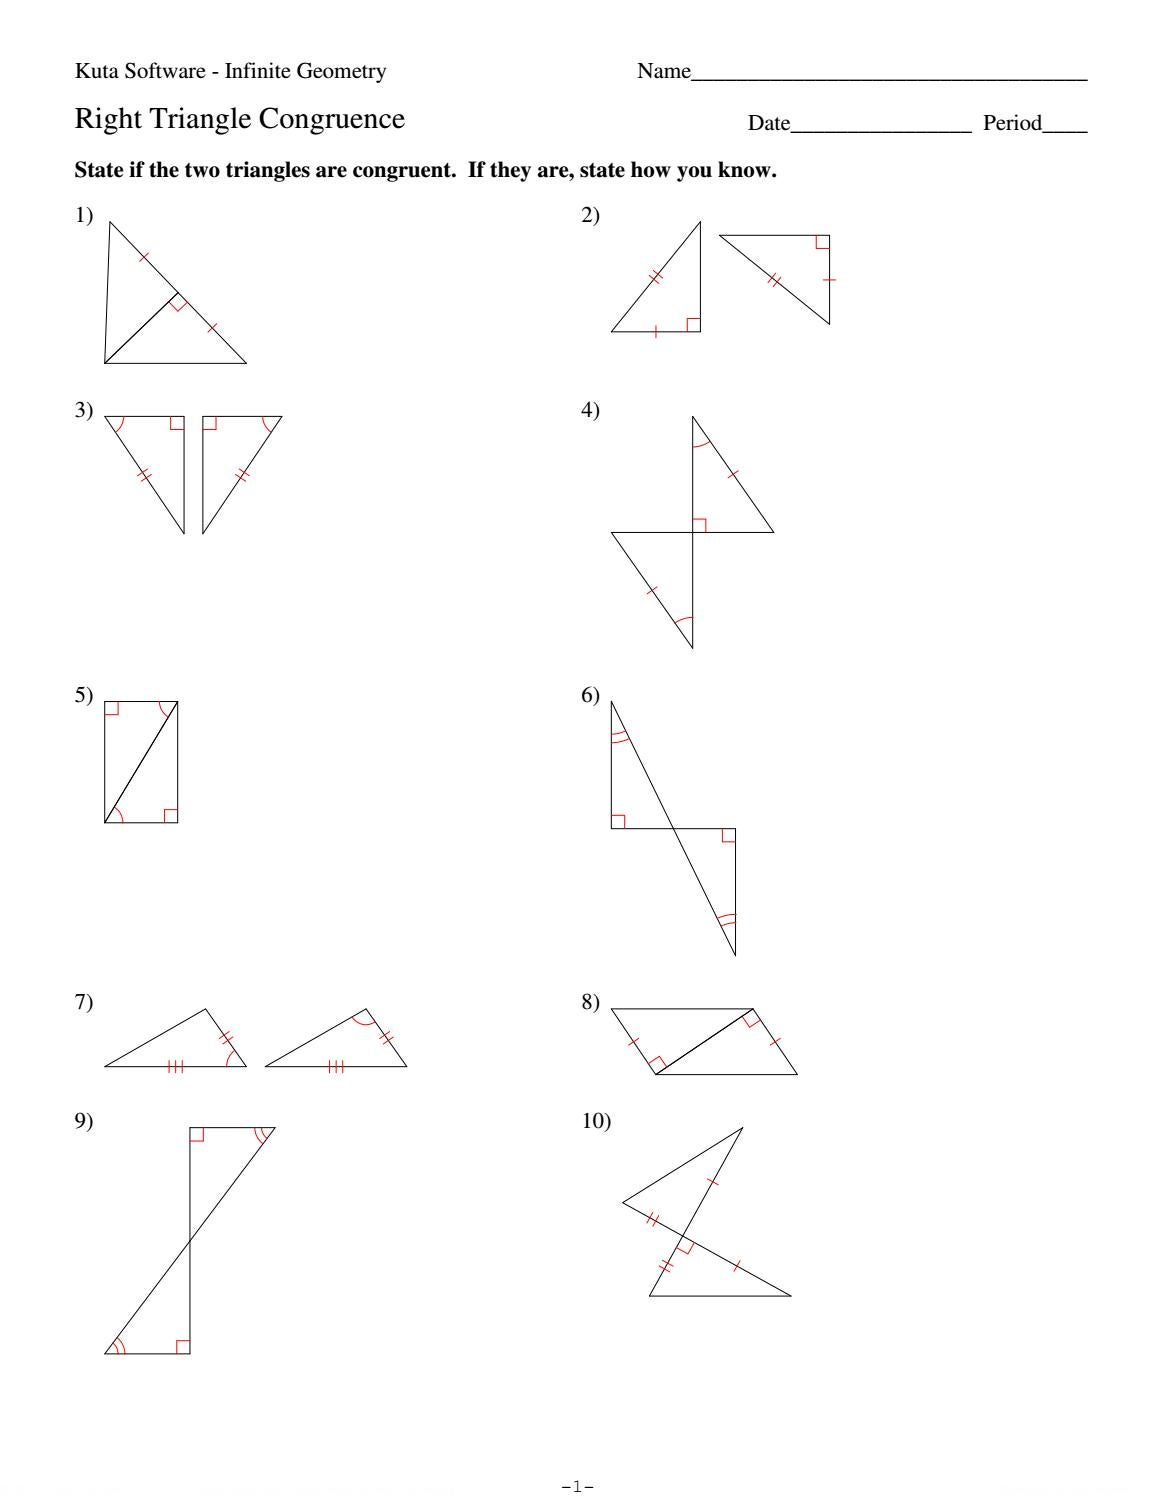 Worksheets Geometry Worksheet Congruent Triangles Answers 4 right triangle congruence by hhs geometry issuu